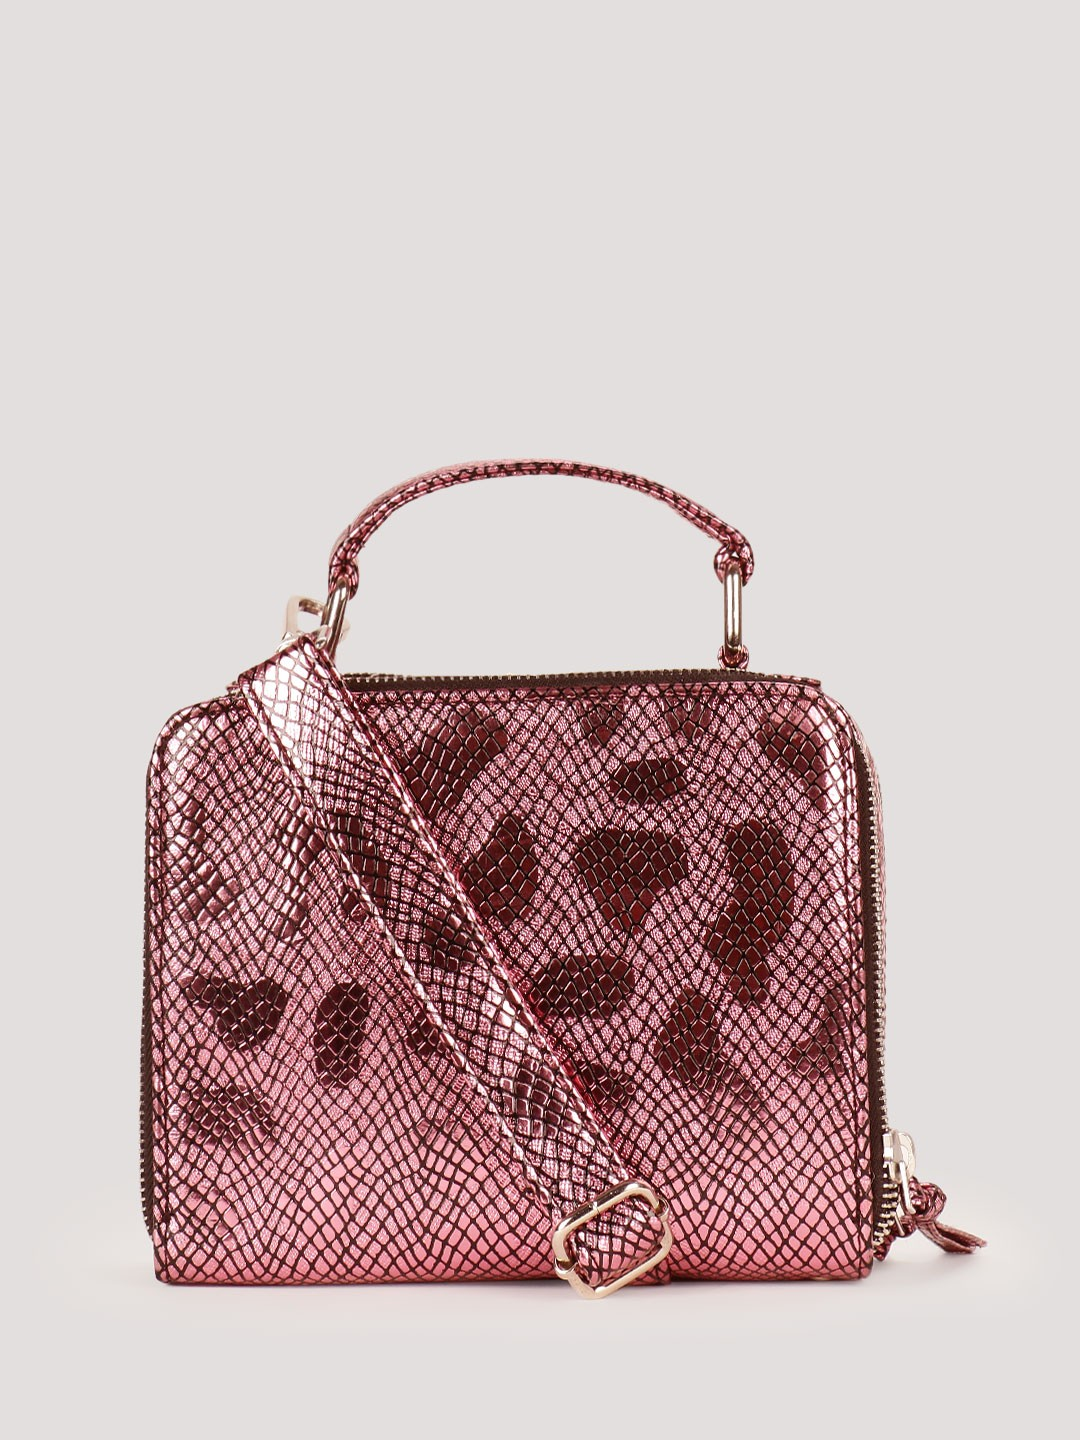 Buy KOOVS Mini Box Sling Bag For Women - Women's Pink Sling Bags ...